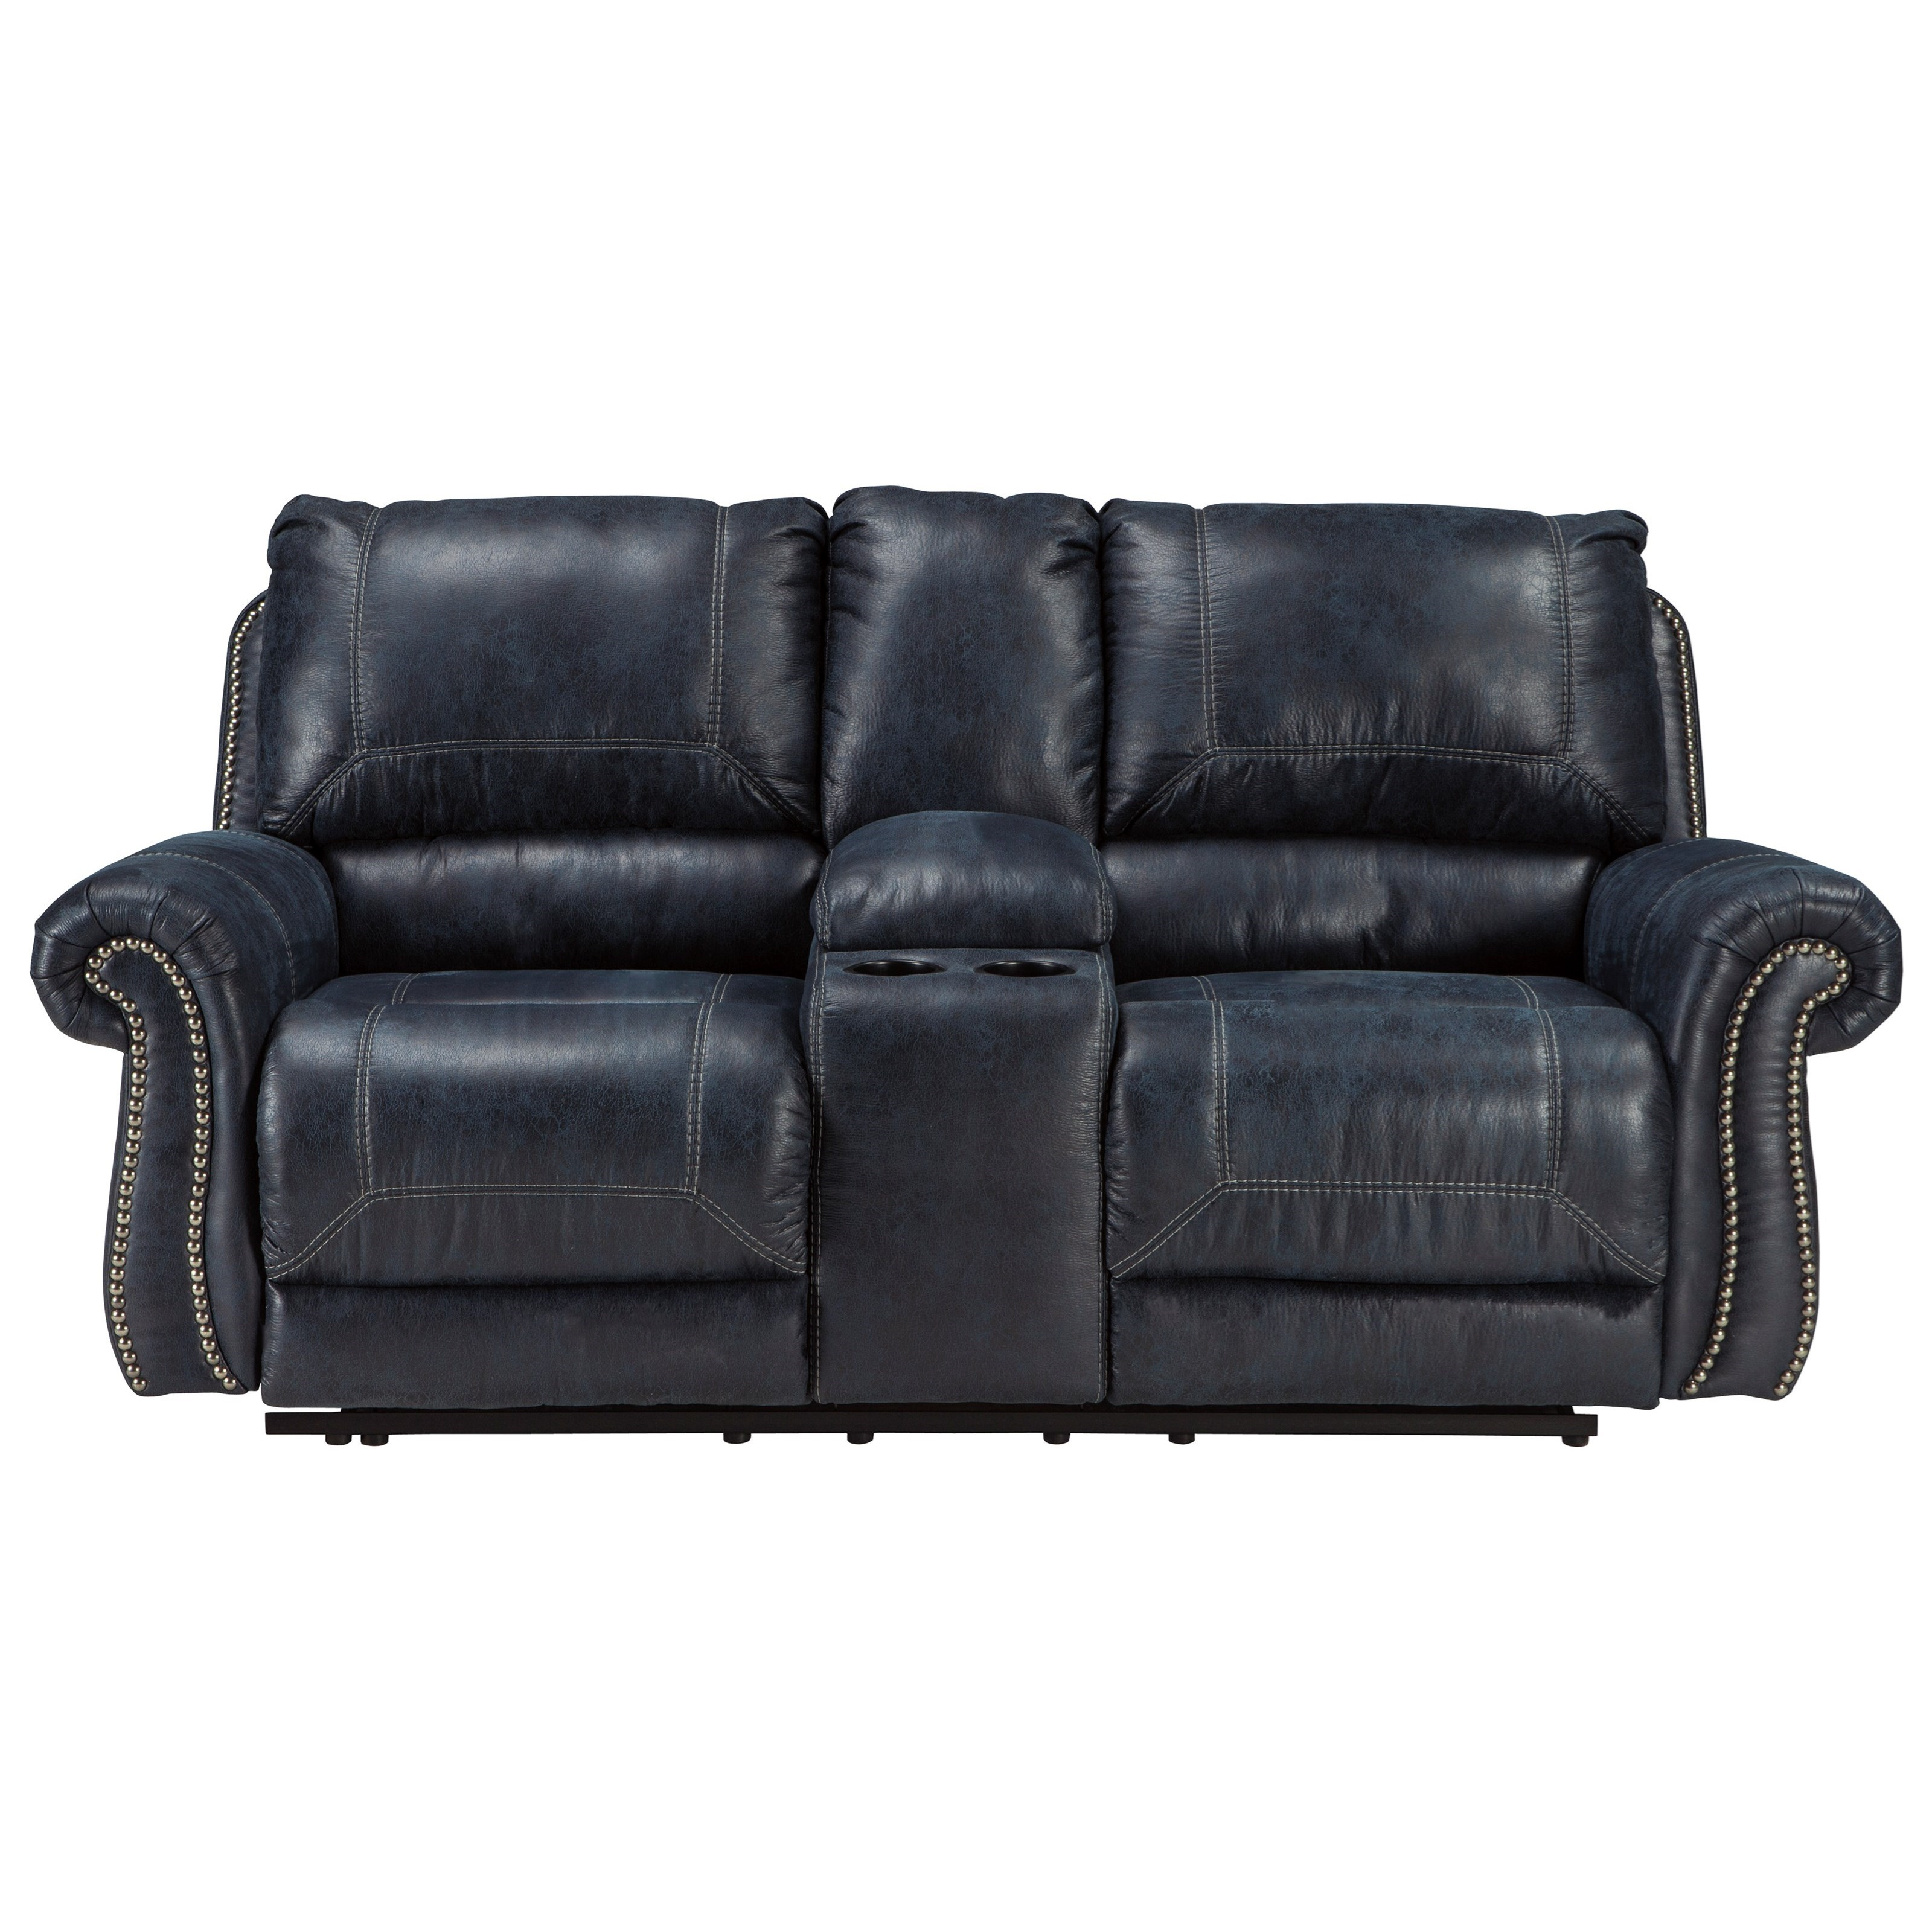 Signature Design By Ashley Milhaven 6330494 Double Reclining Loveseat W Console With Rolled